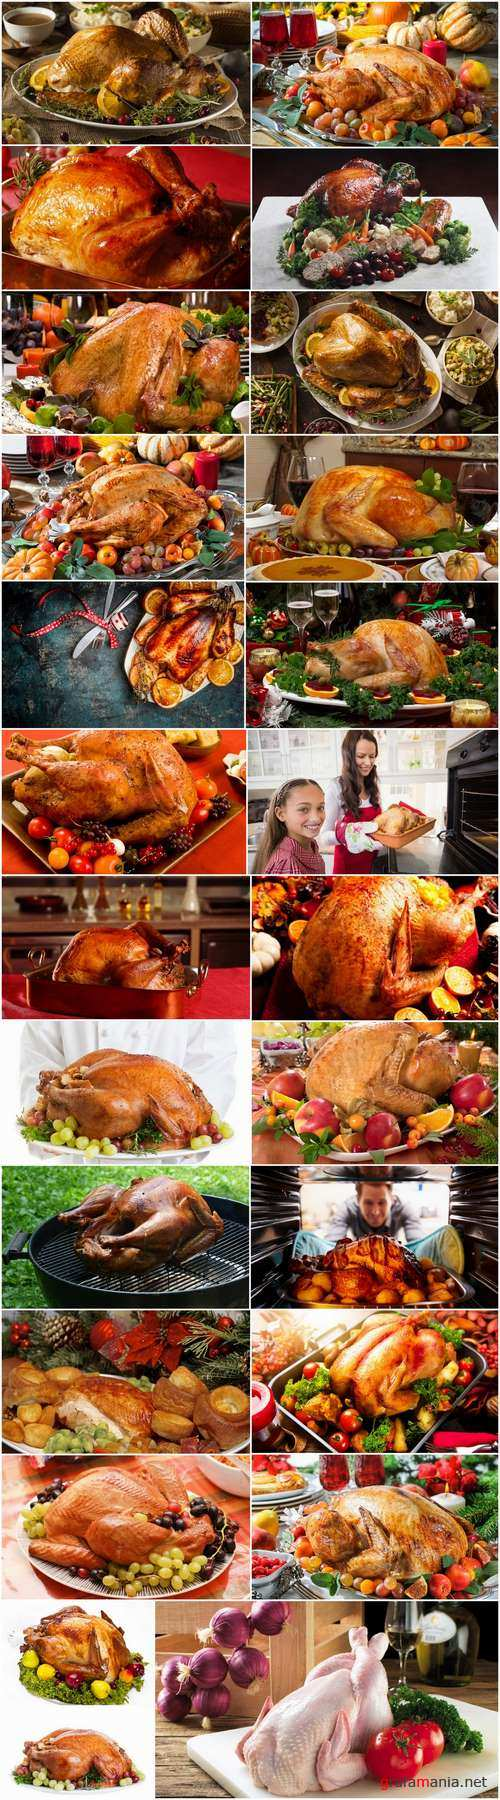 Roast turkey gobbler hen holiday dish 25 HQ Jpeg